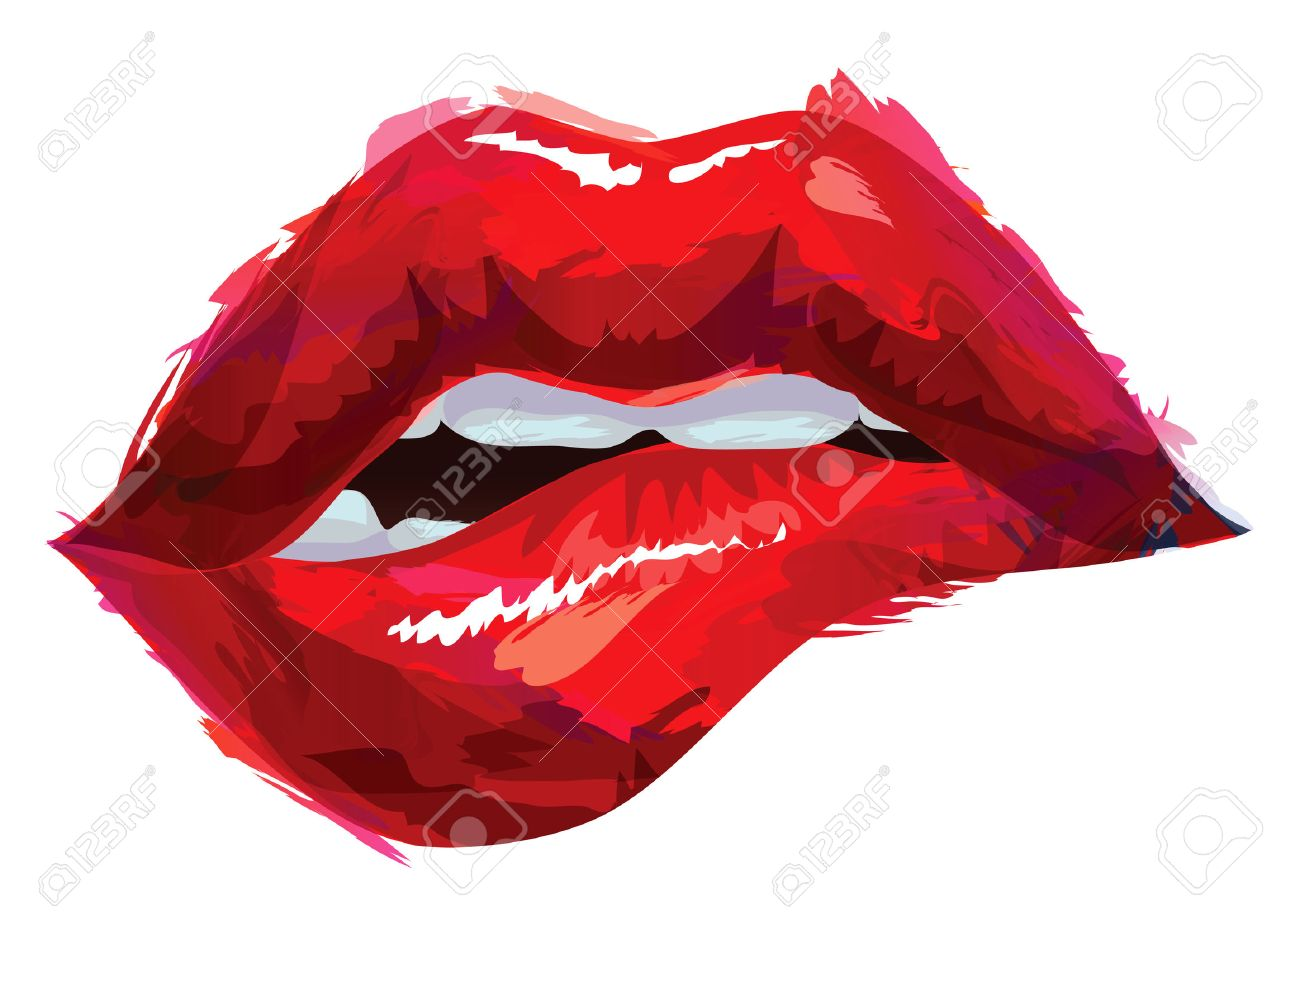 75 132 sexy woman stock vector illustration and royalty free sexy rh 123rf com Bad Spelling Clip Art Lipstick Print Clip Art